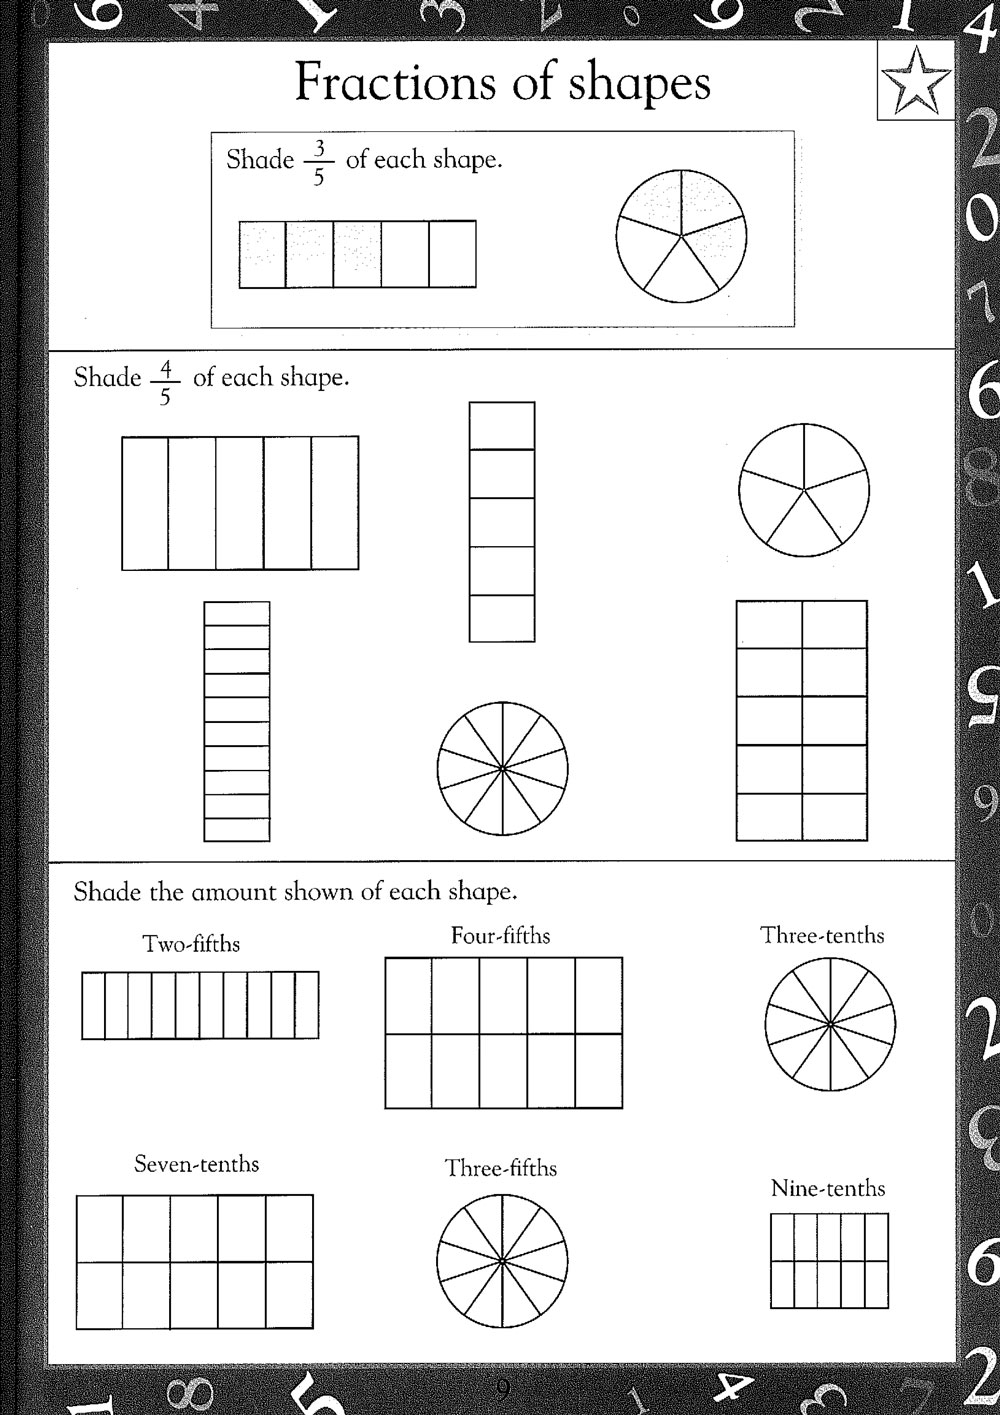 Worksheet 7801009 Mental Maths Worksheets Ks3 Mental maths – Maths Worksheets Ks3 Printable